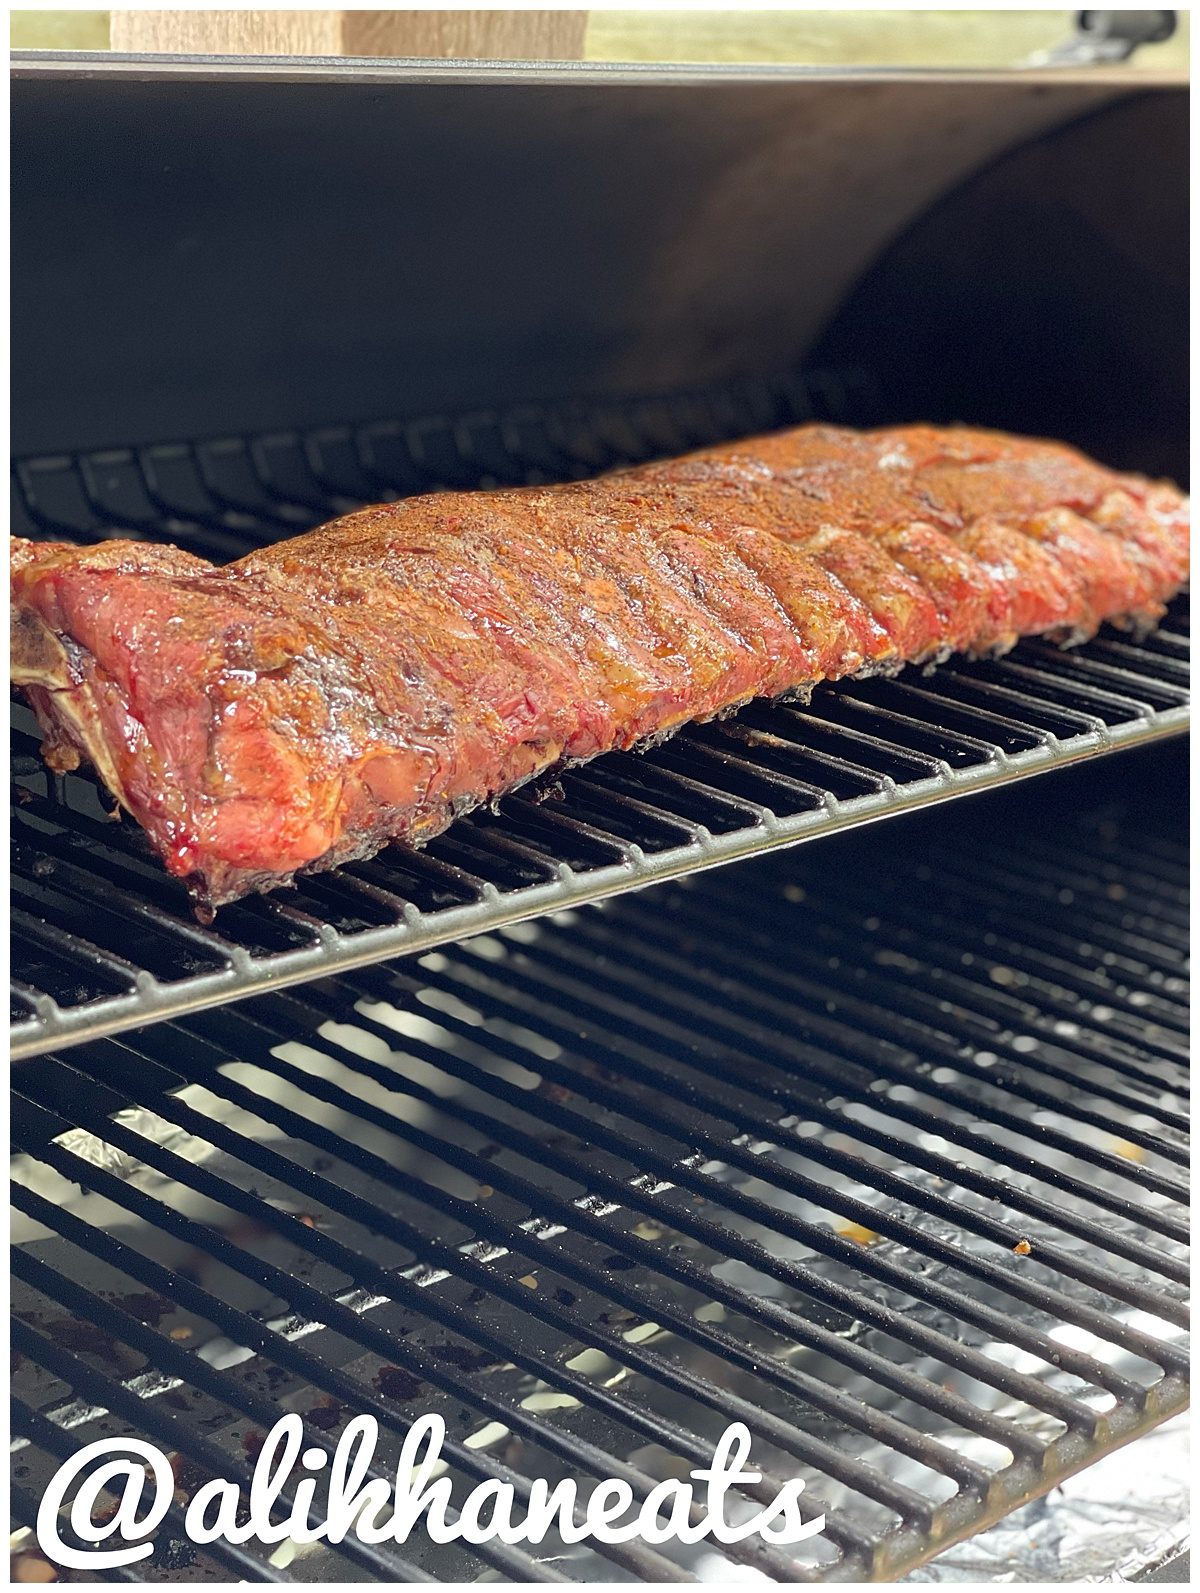 Traeger Baby Back ribs on the grill 1